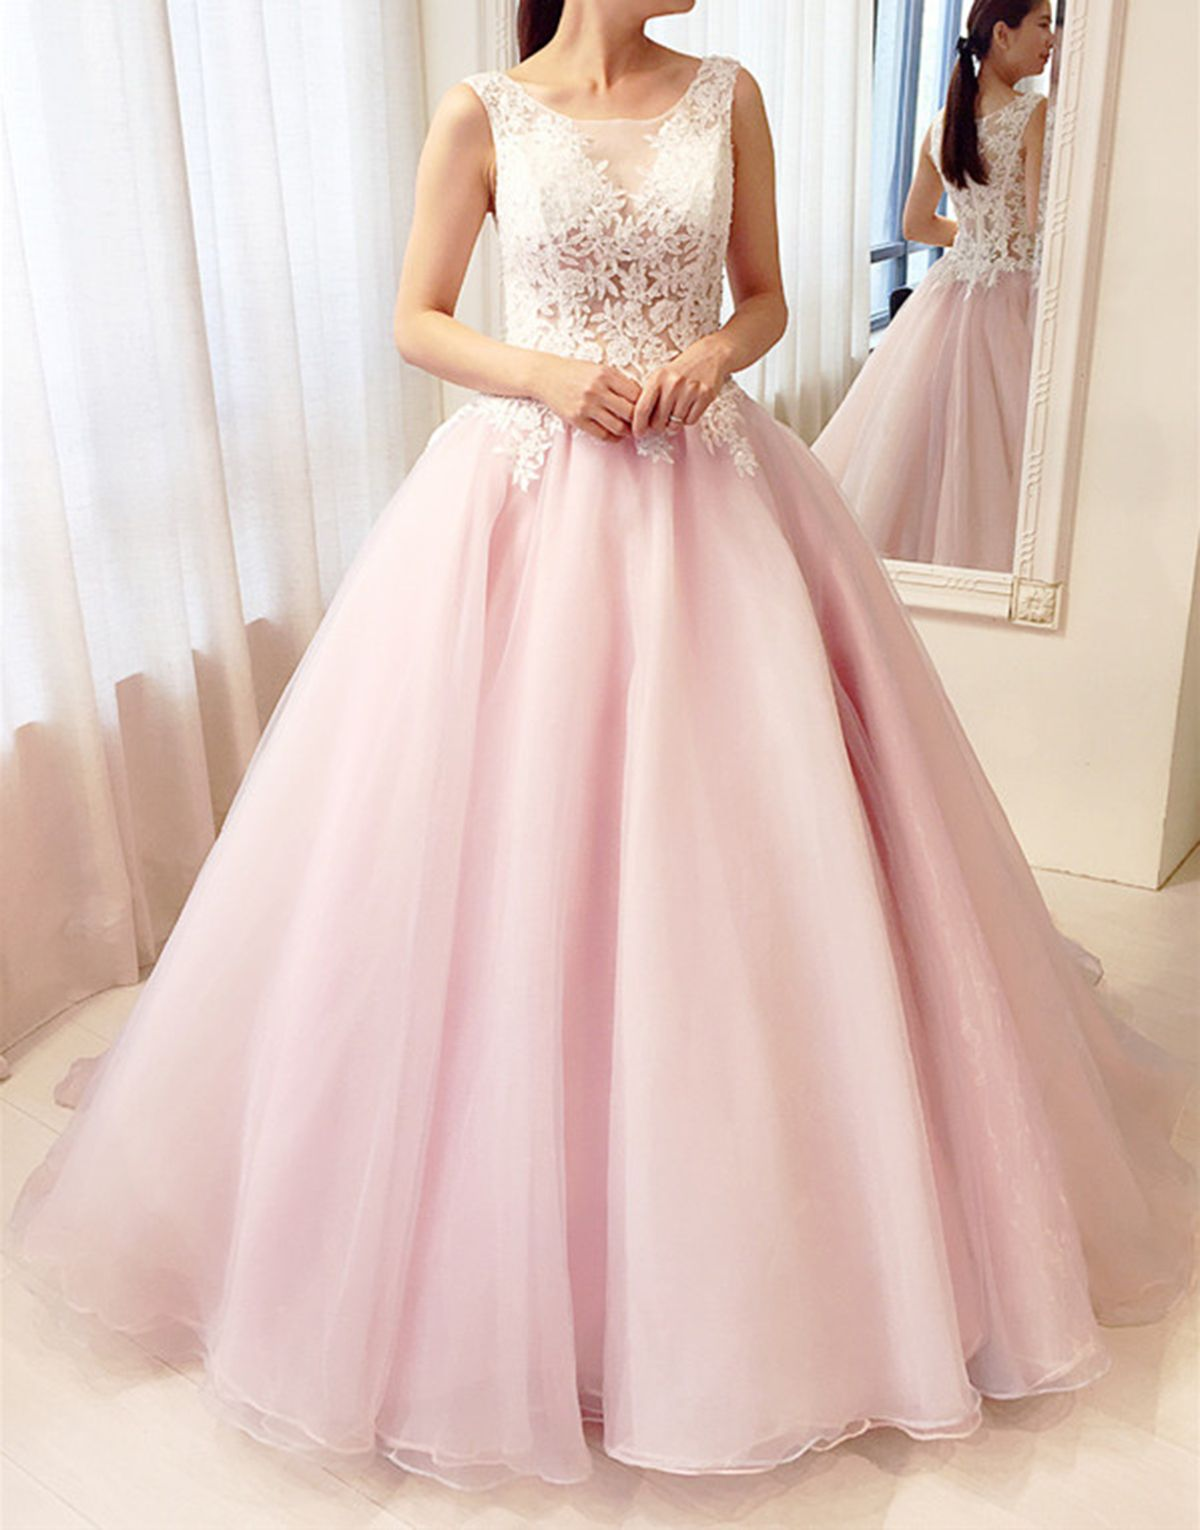 Beautiful pink lace tulle long poofy prom dress for teens #promdress ...